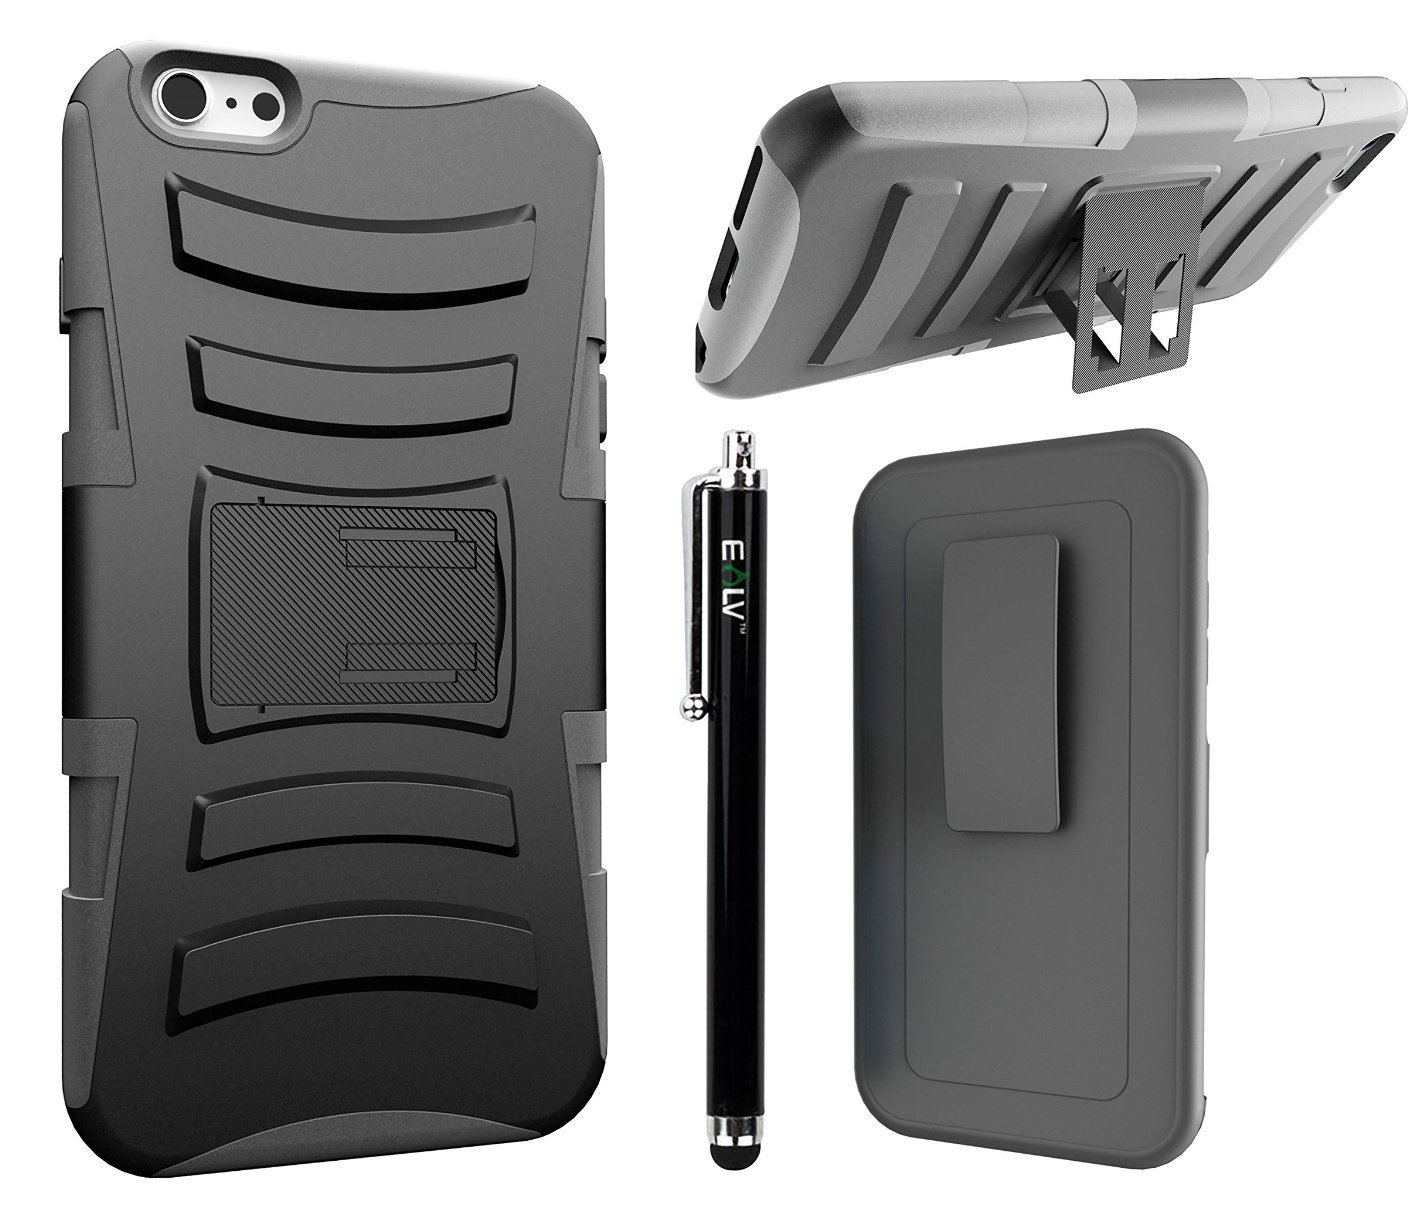 iPhone 6 Plus Case, iPhone 6 Plus Holster Defender Case, E LV iPhone 6 Plus Case